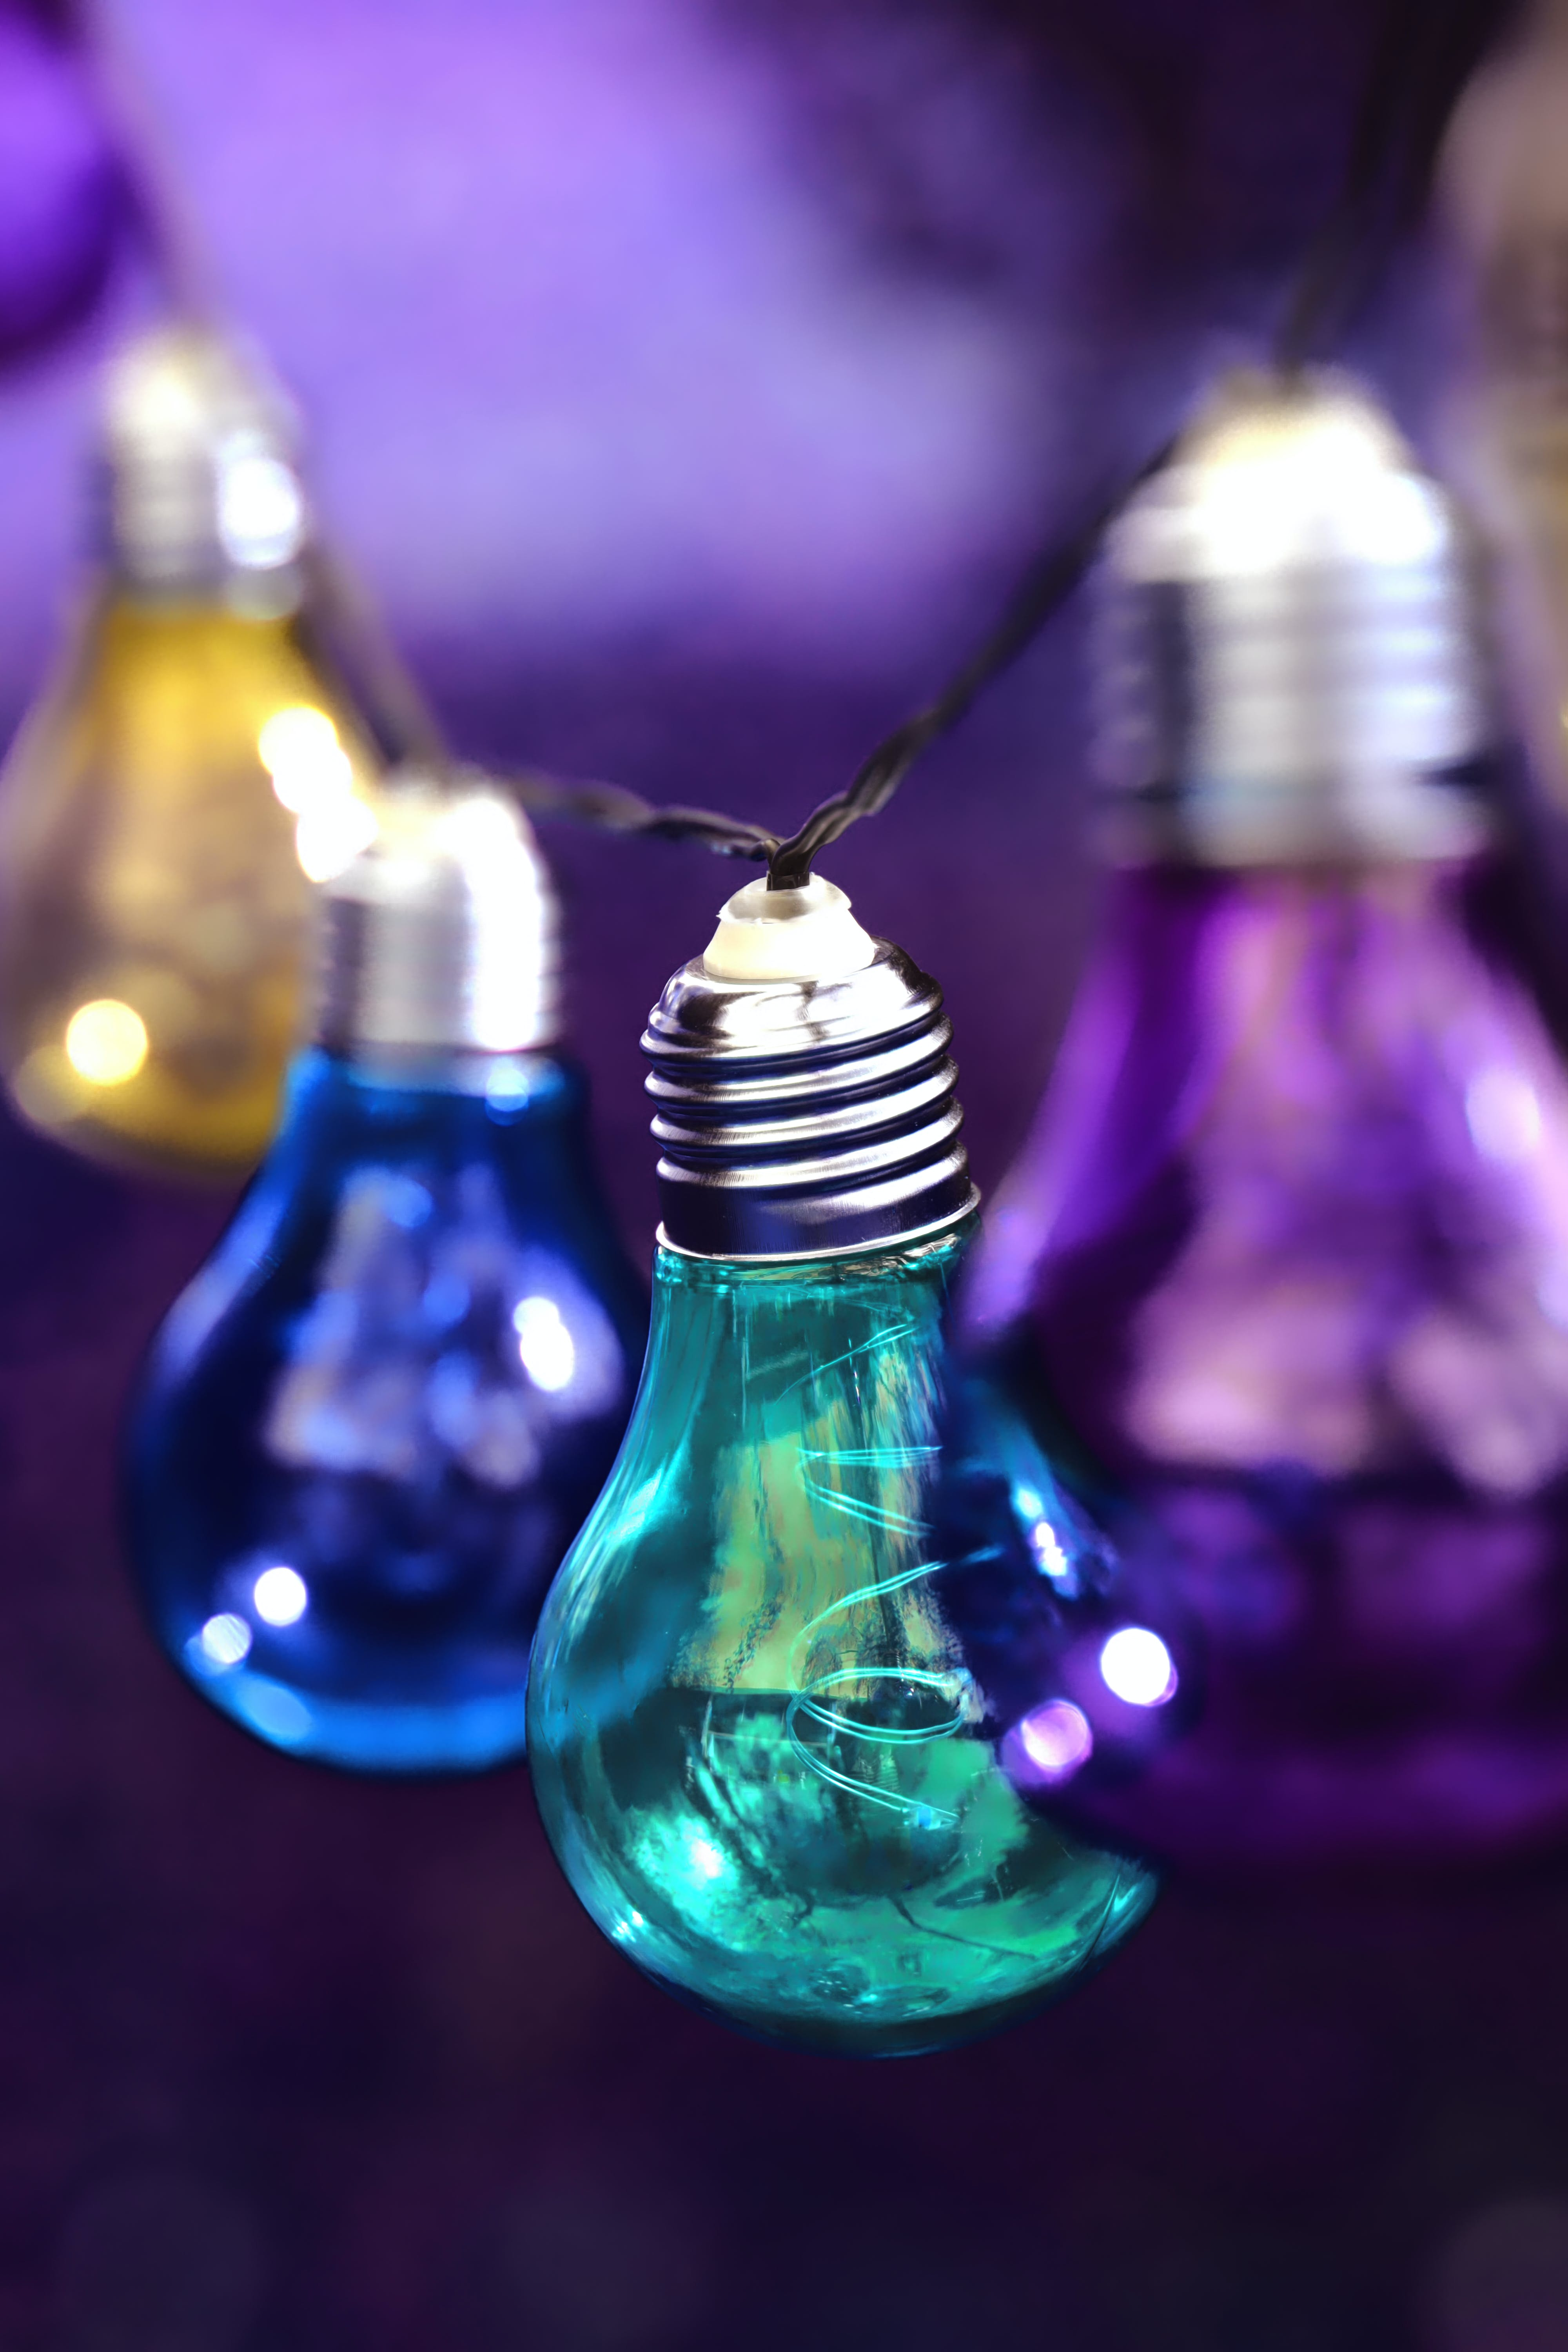 Purple, Teal, Blue, and Yellow Hanging Light Bulbs